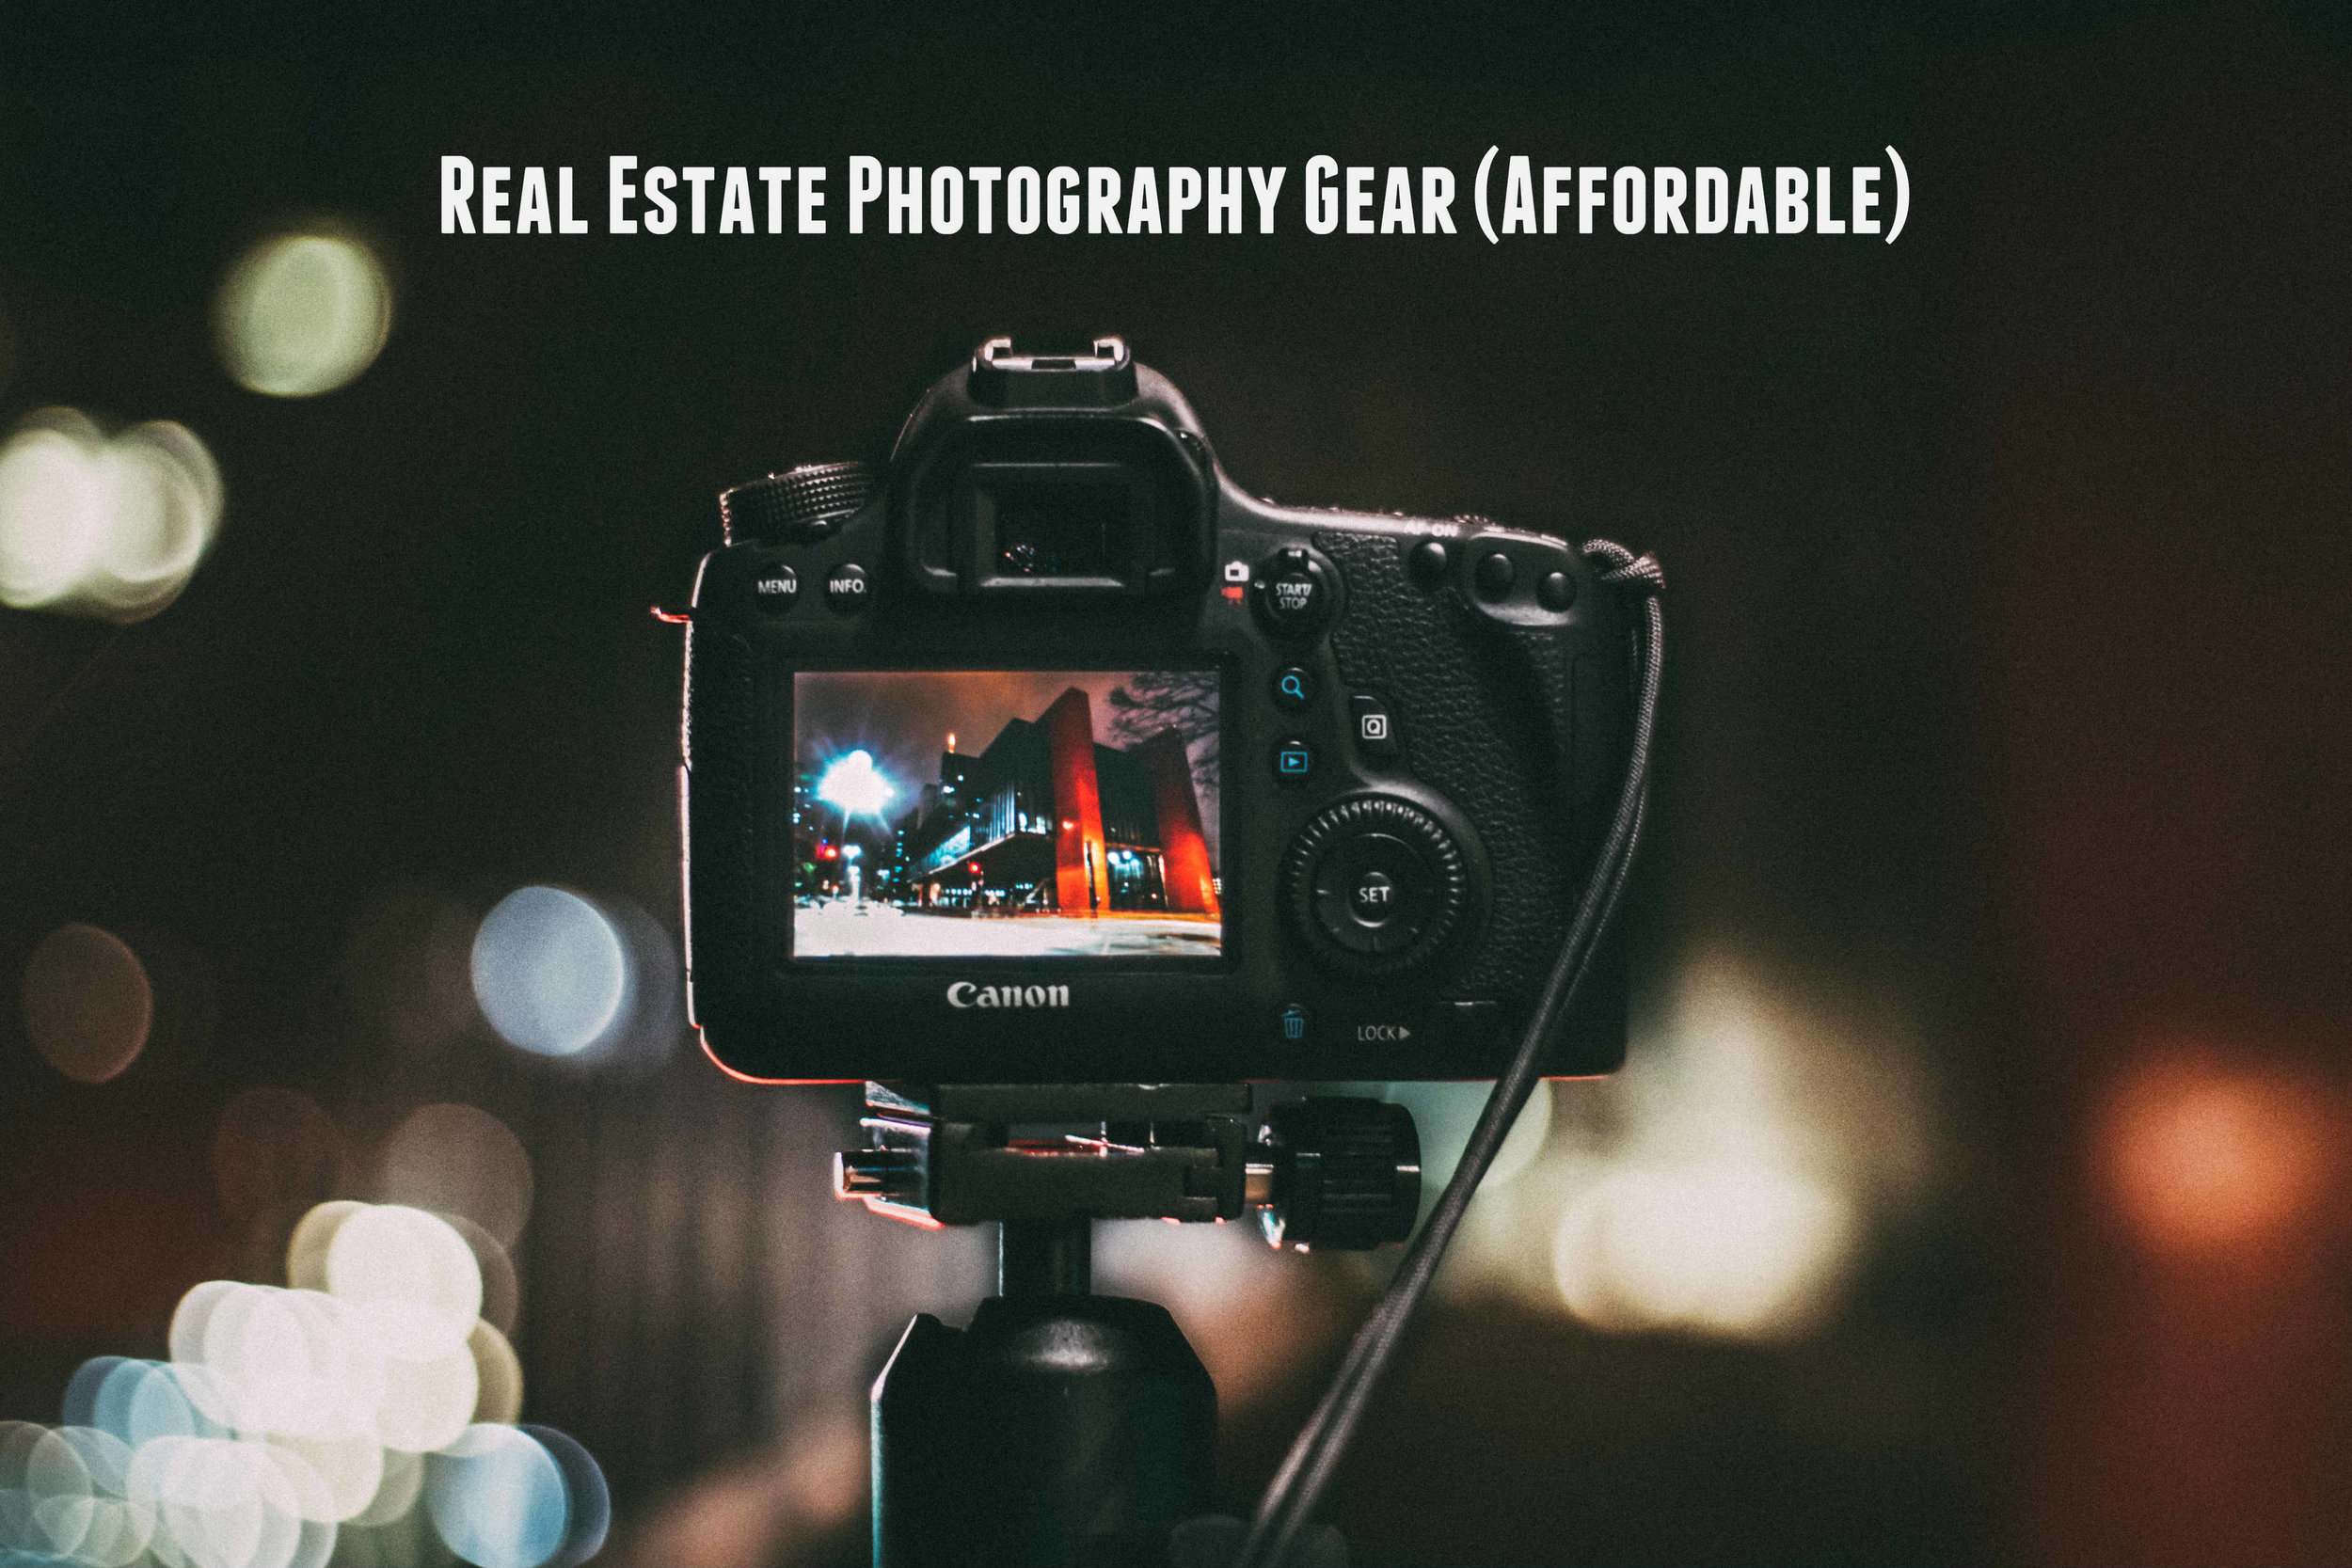 Real Estate Photography Gear (Affordable)